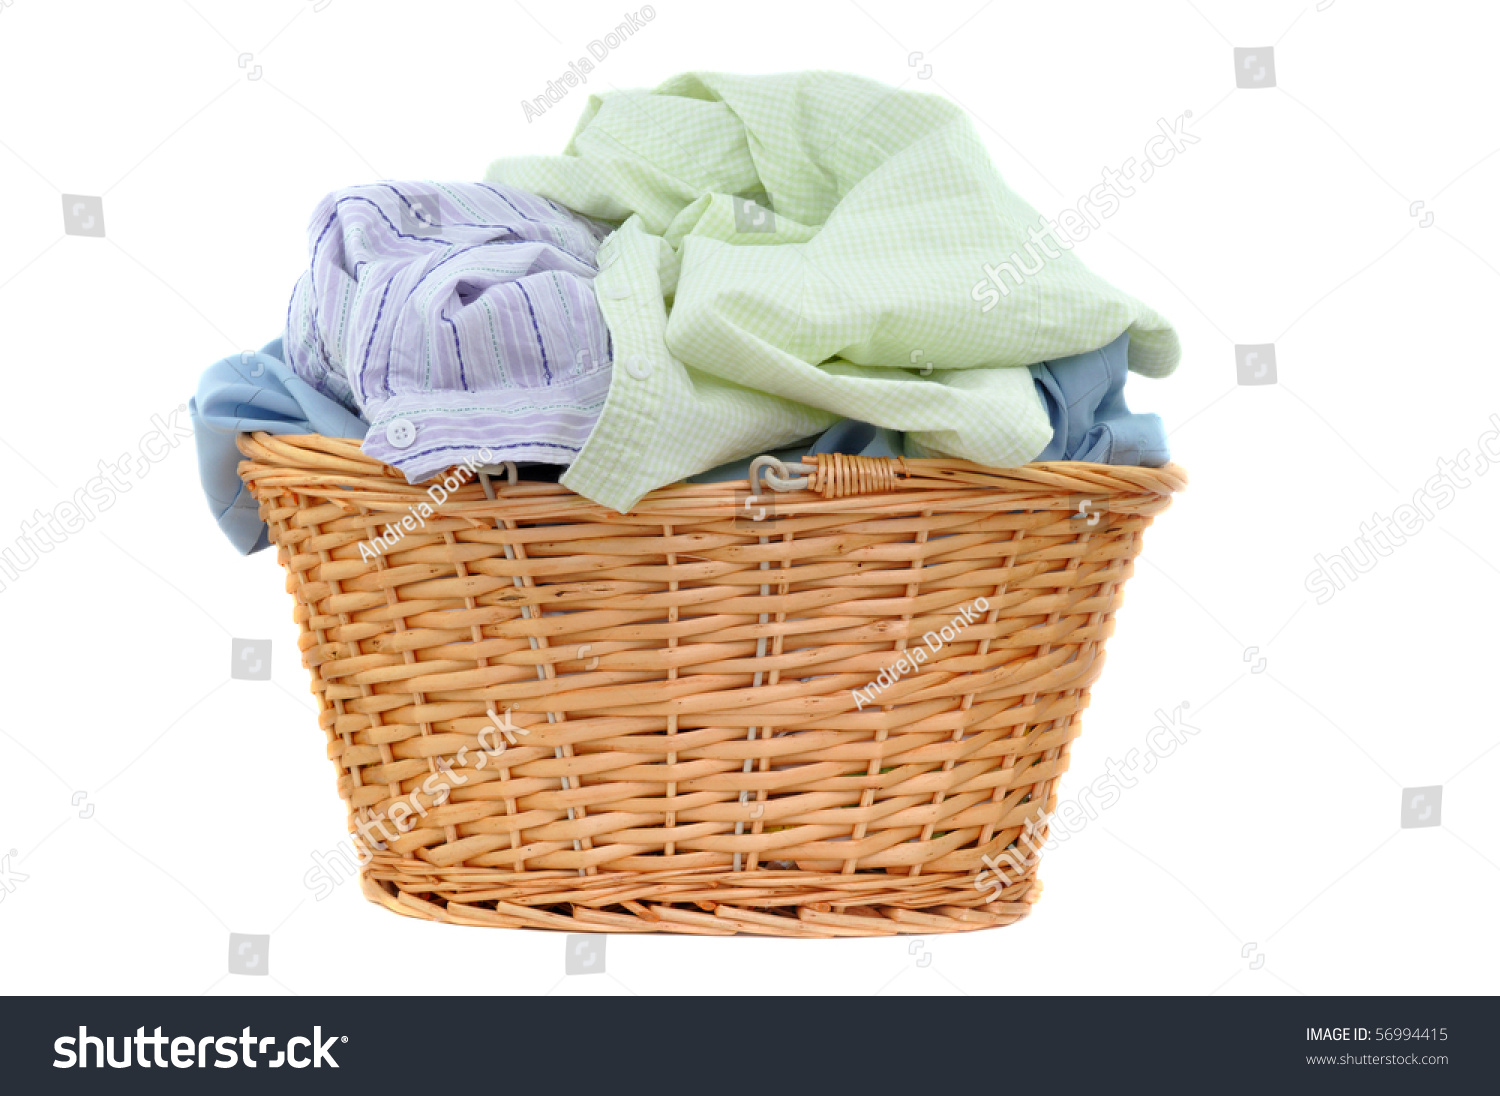 how to get laundry detergent out of white clothes